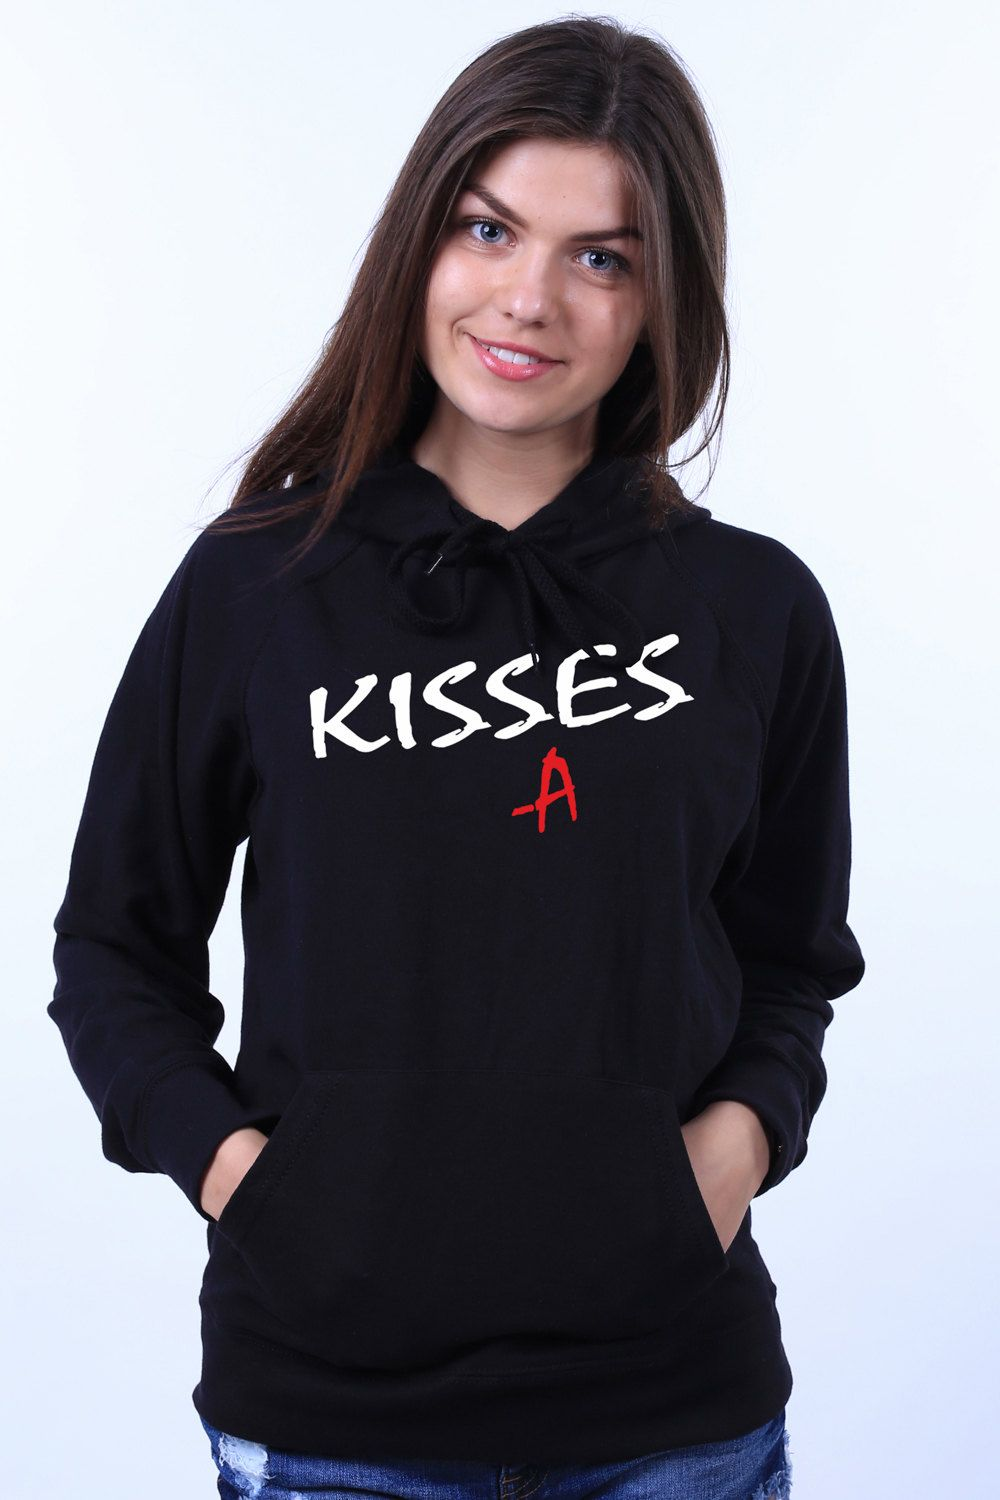 Pretty Little Liars Kisses A PLL Fan Clothing Light Weight Sweatshirt Hoodie …